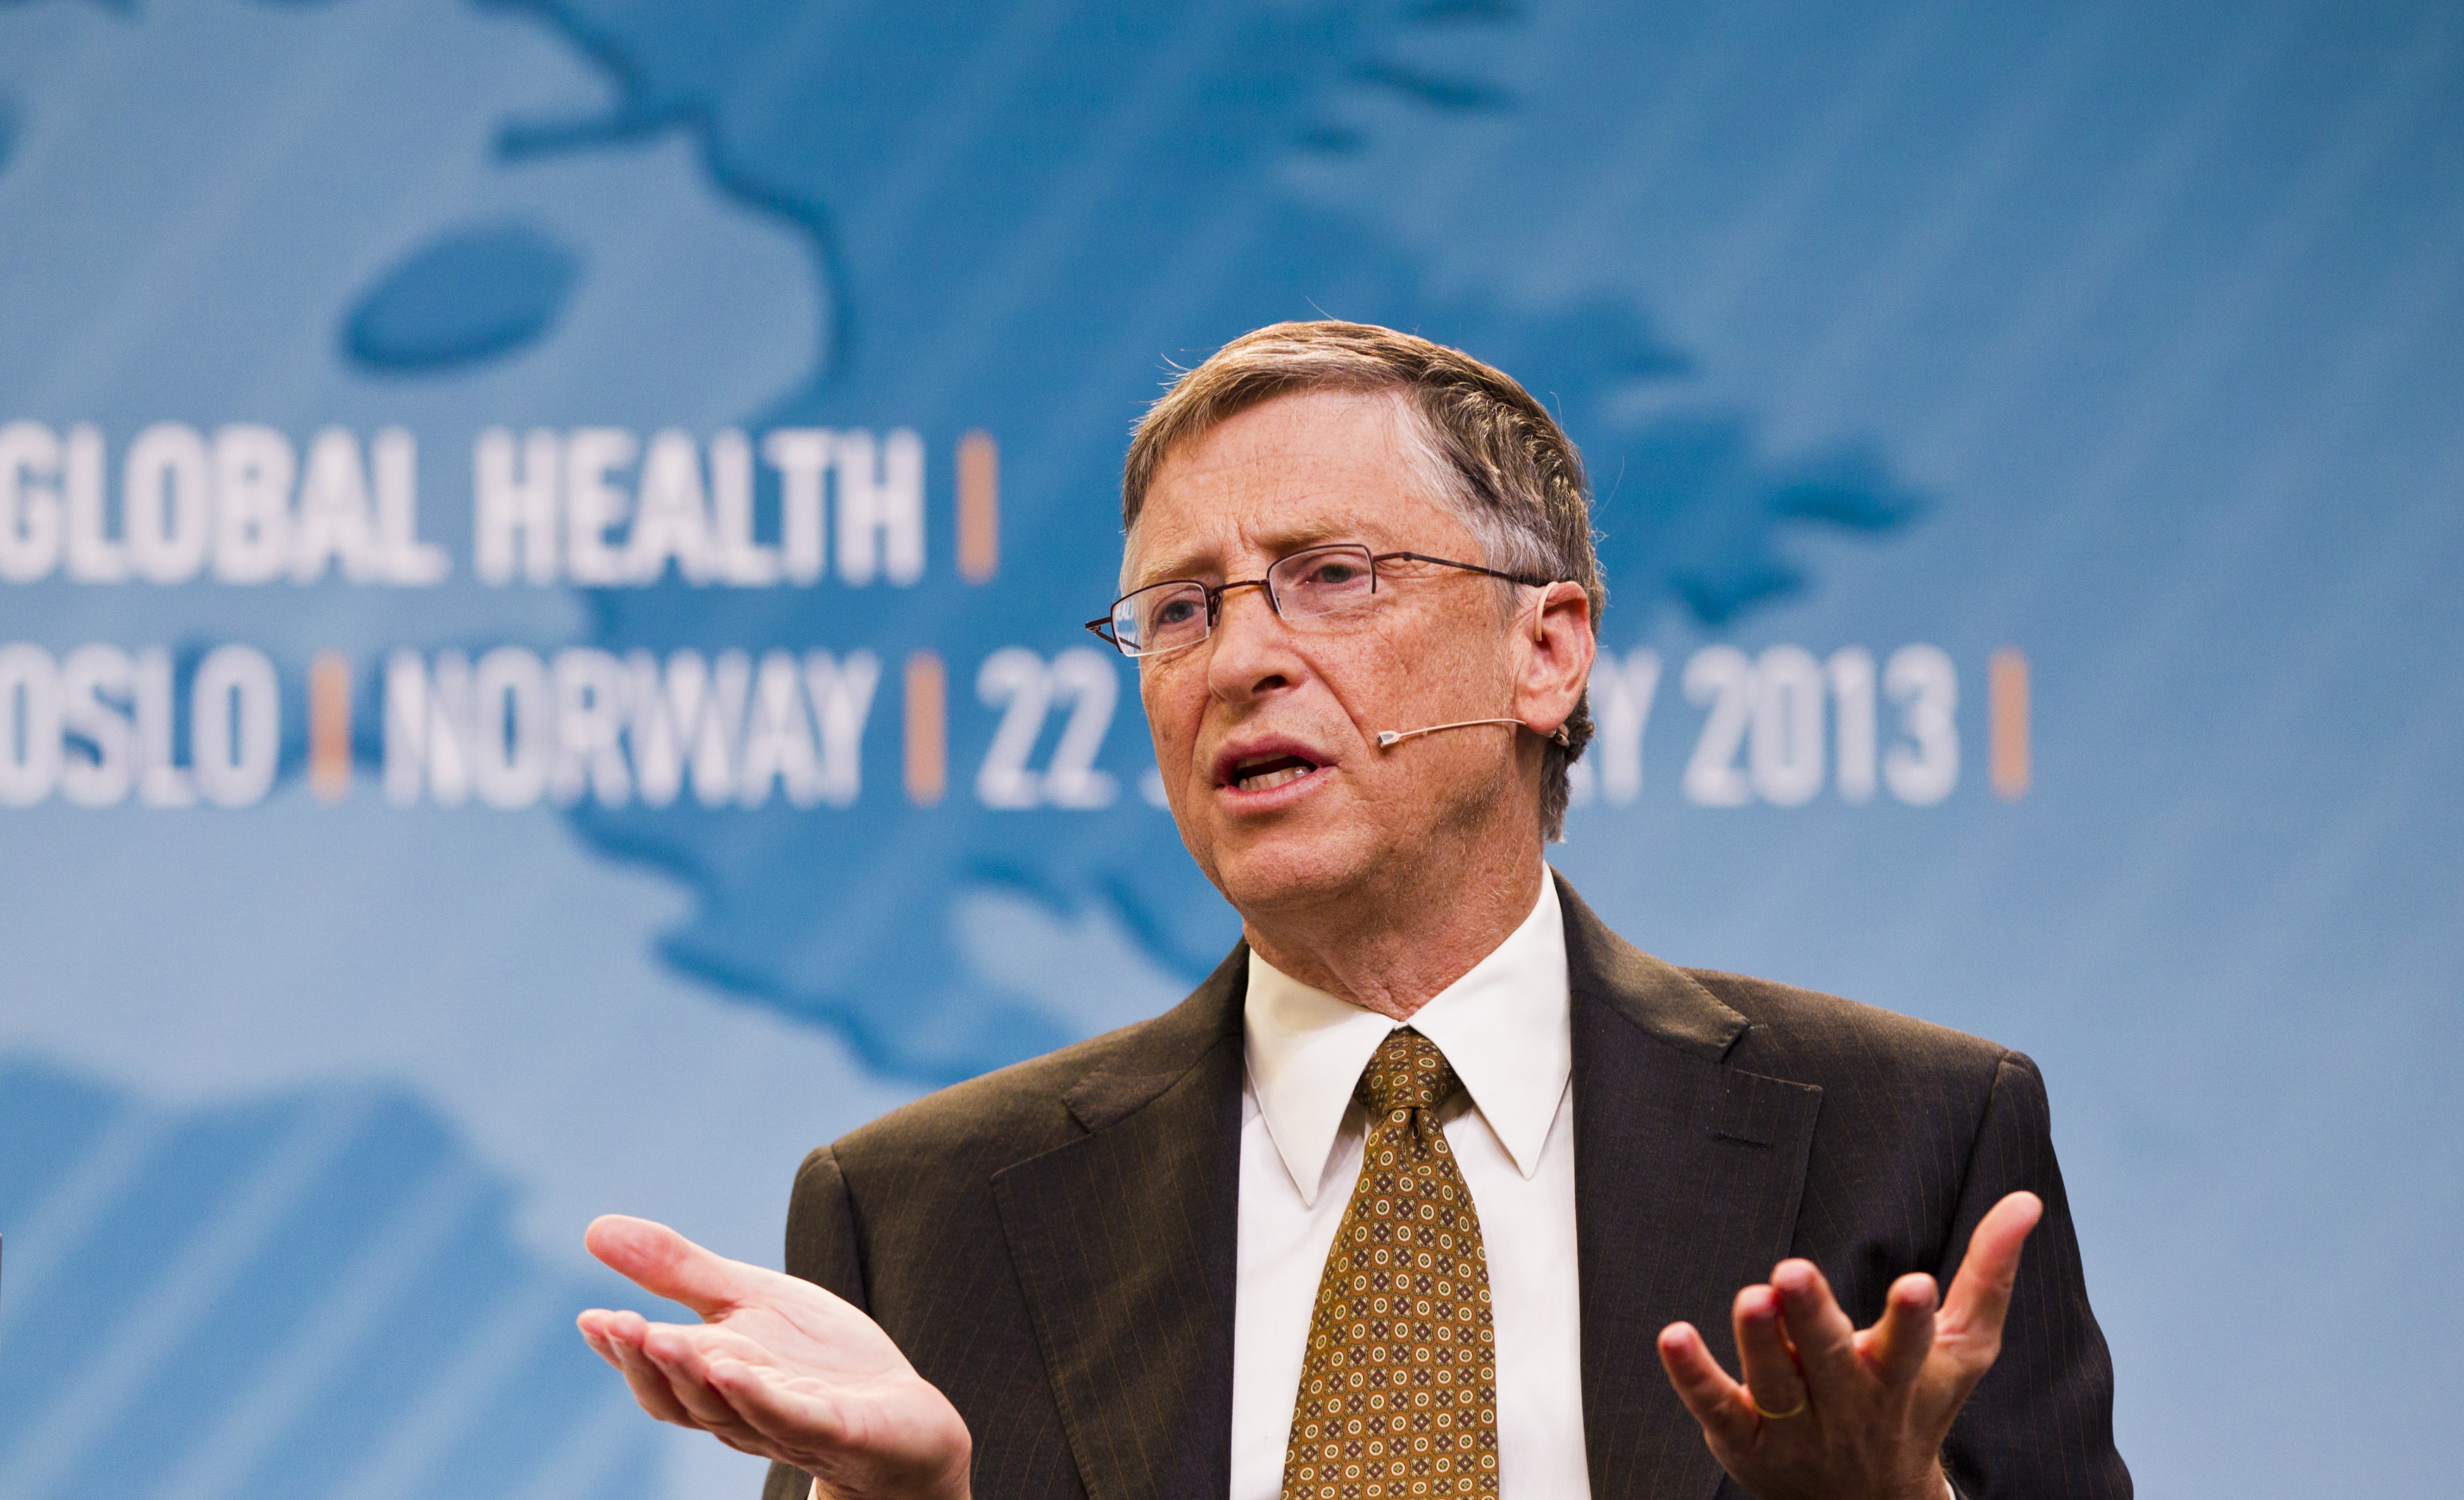 Impact Investing and Global Health: The Future of Global Health Financing?